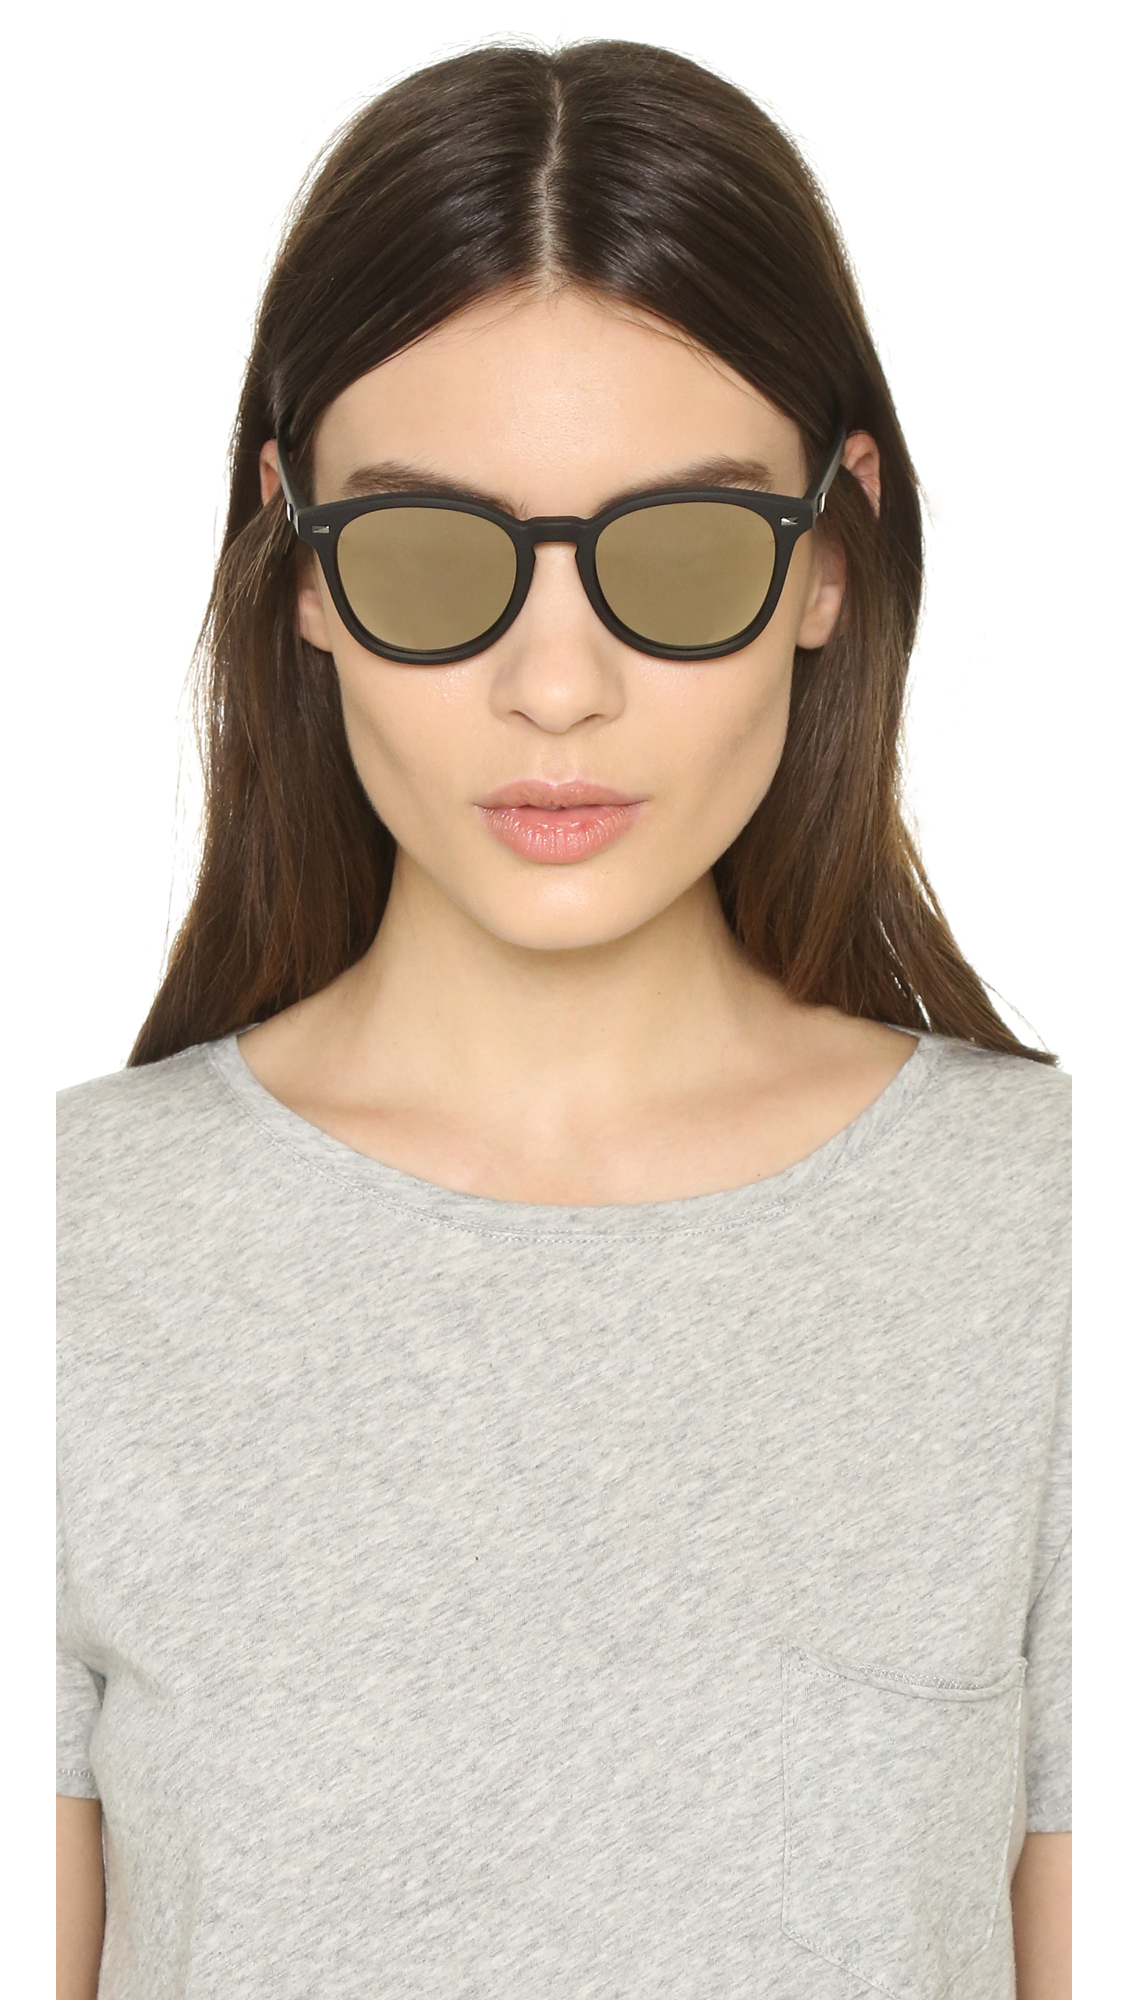 a3684748da Lyst - Le Specs Bandwagon Sunglasses in Black